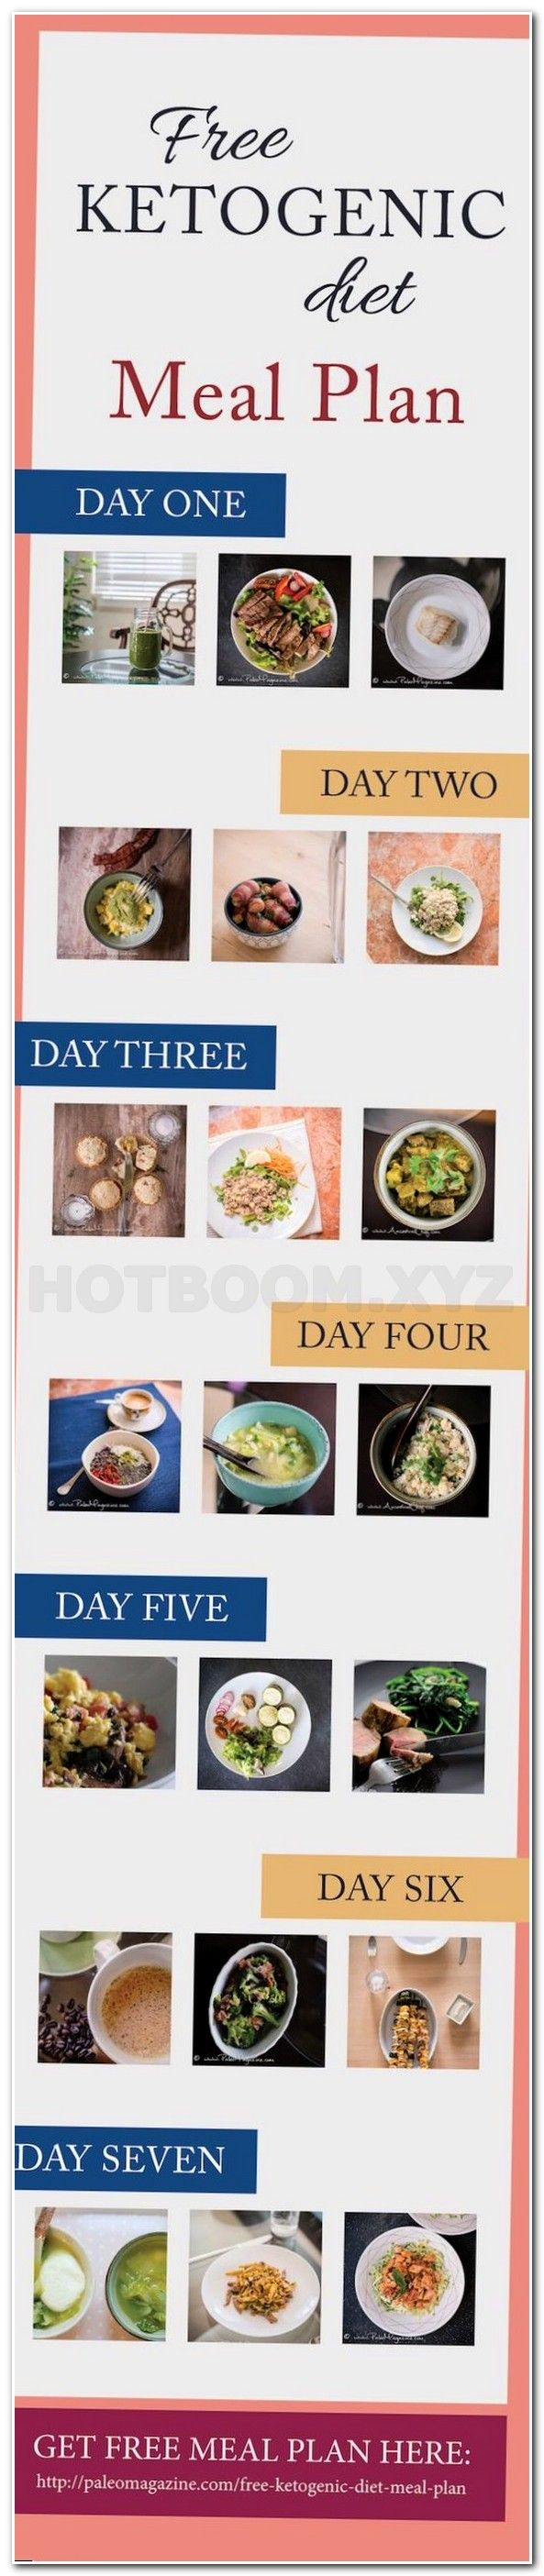 7-Day Mayo Clinic Diet